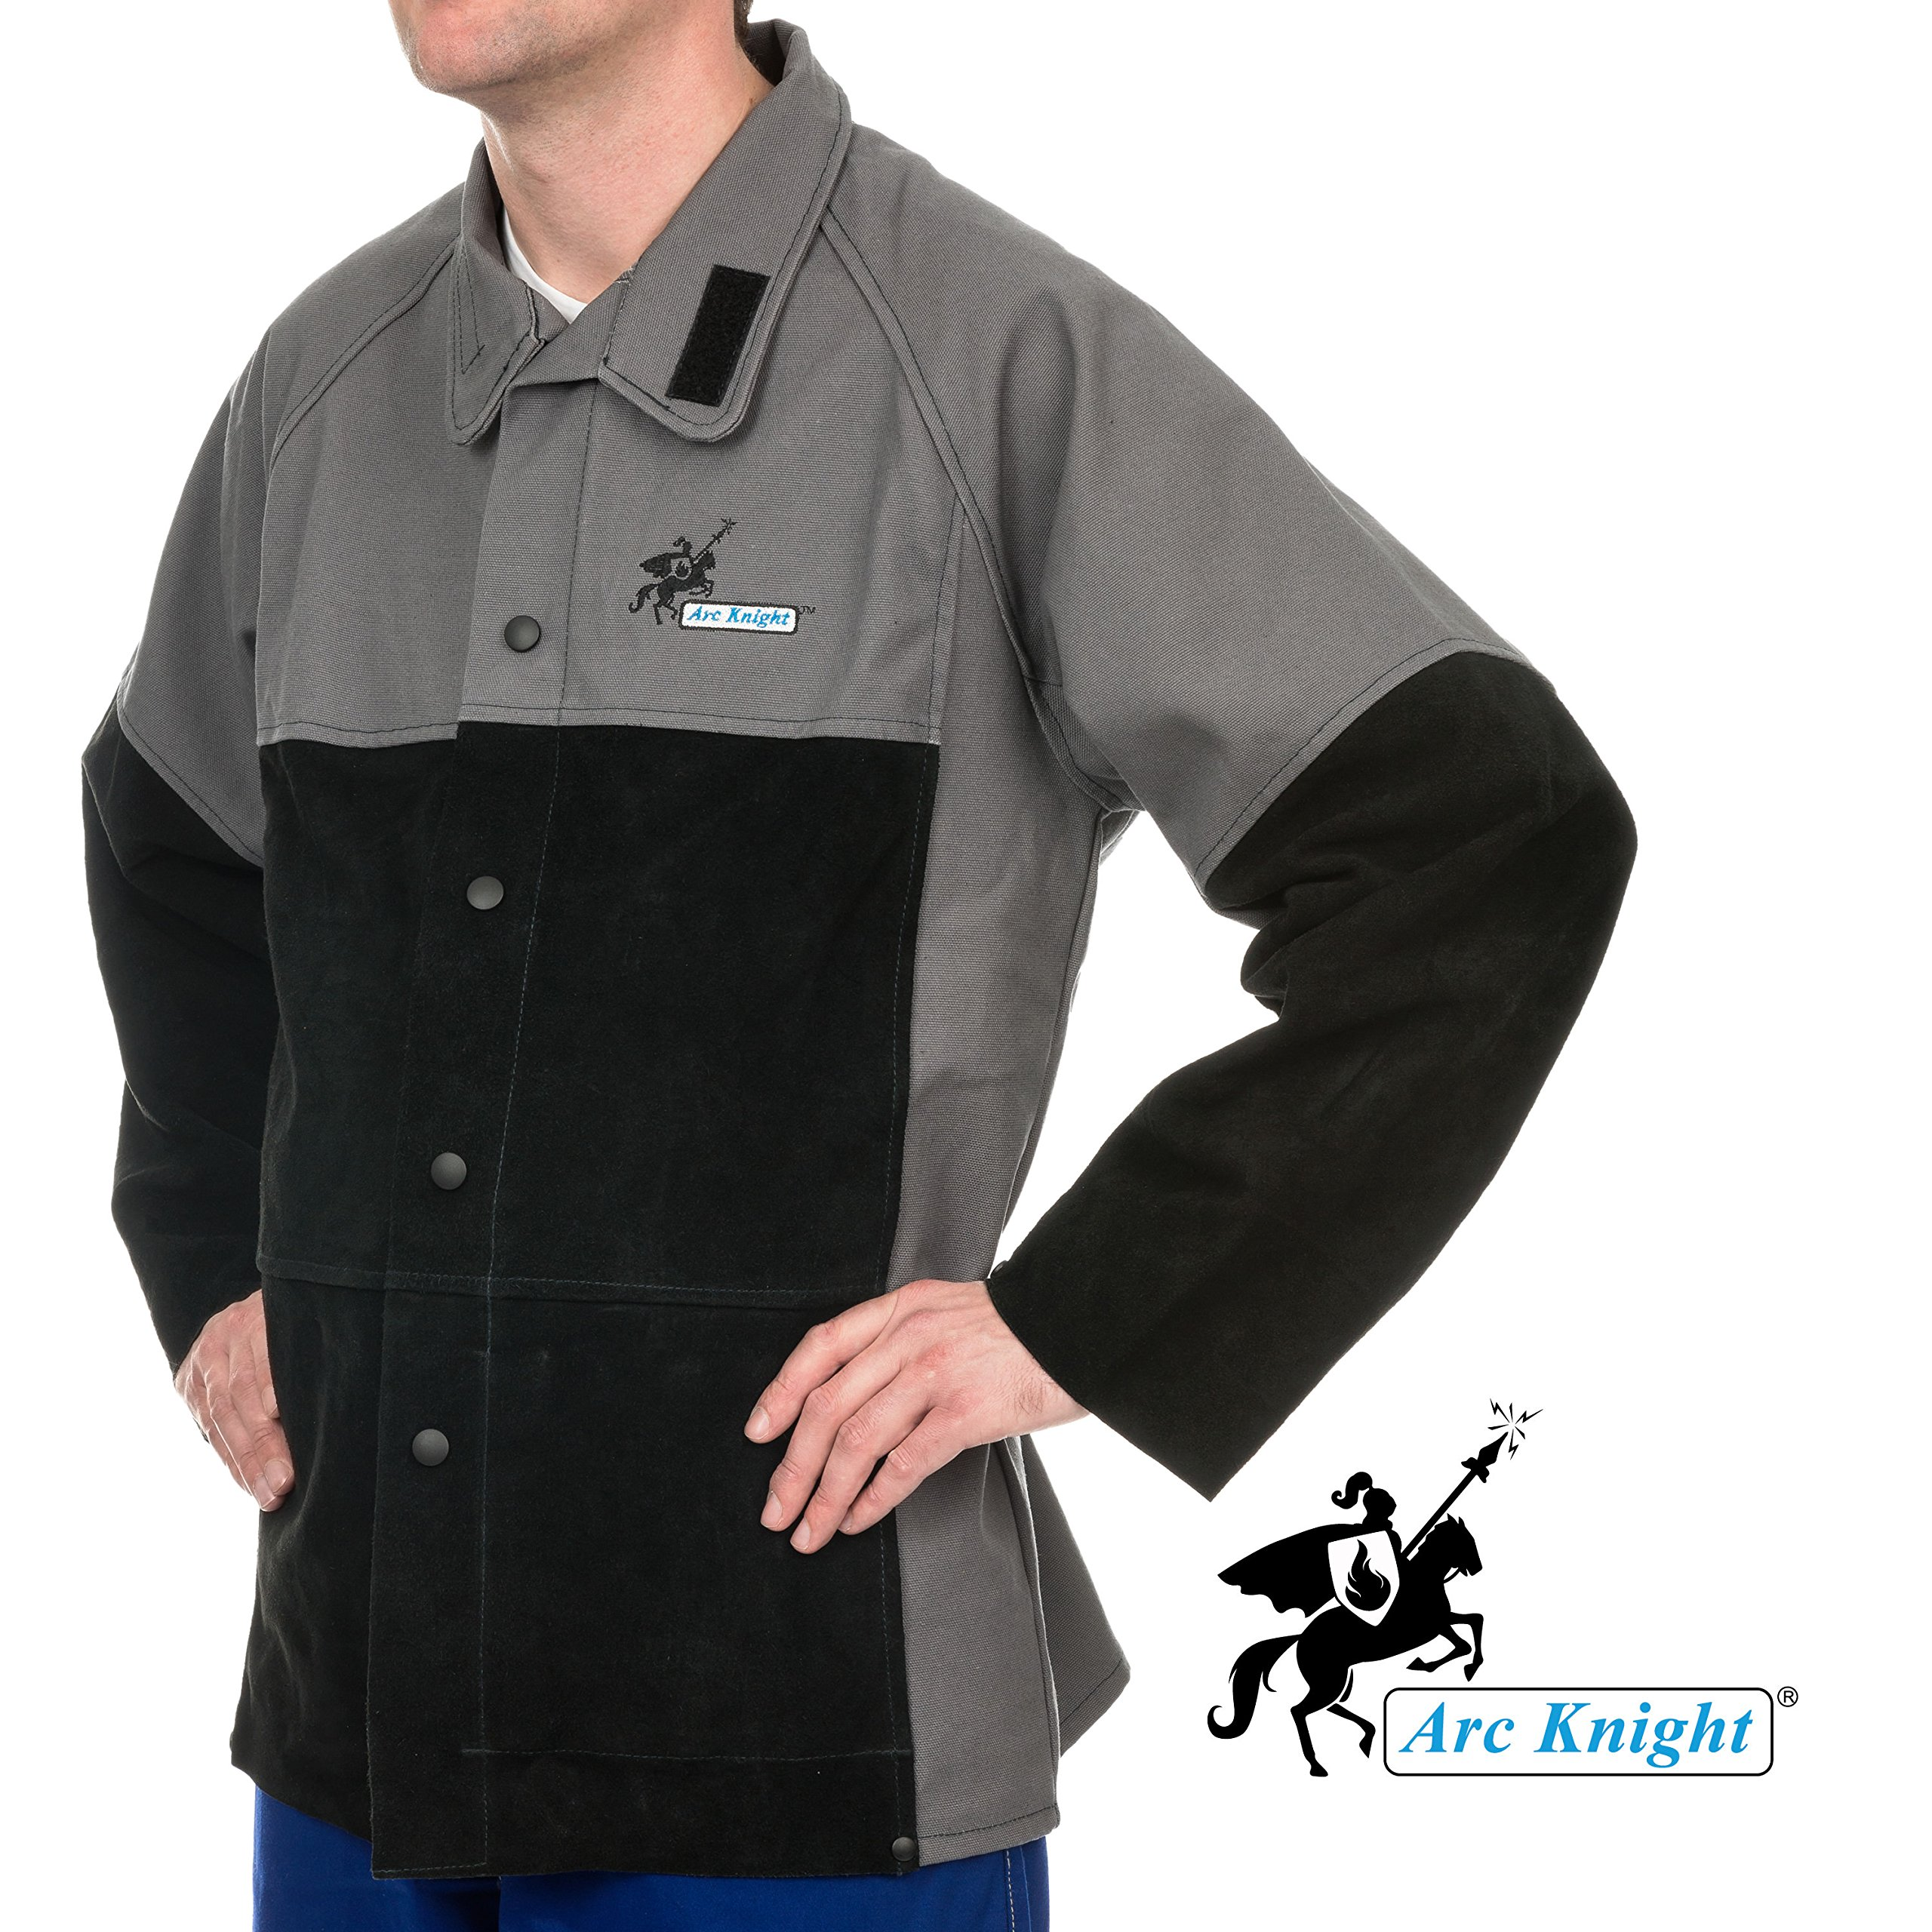 Weldas Arc Knight Versatile Heavy Duty Welding Jacket - Cotton and Leather Sleeves - Grey/Black - Size XXL